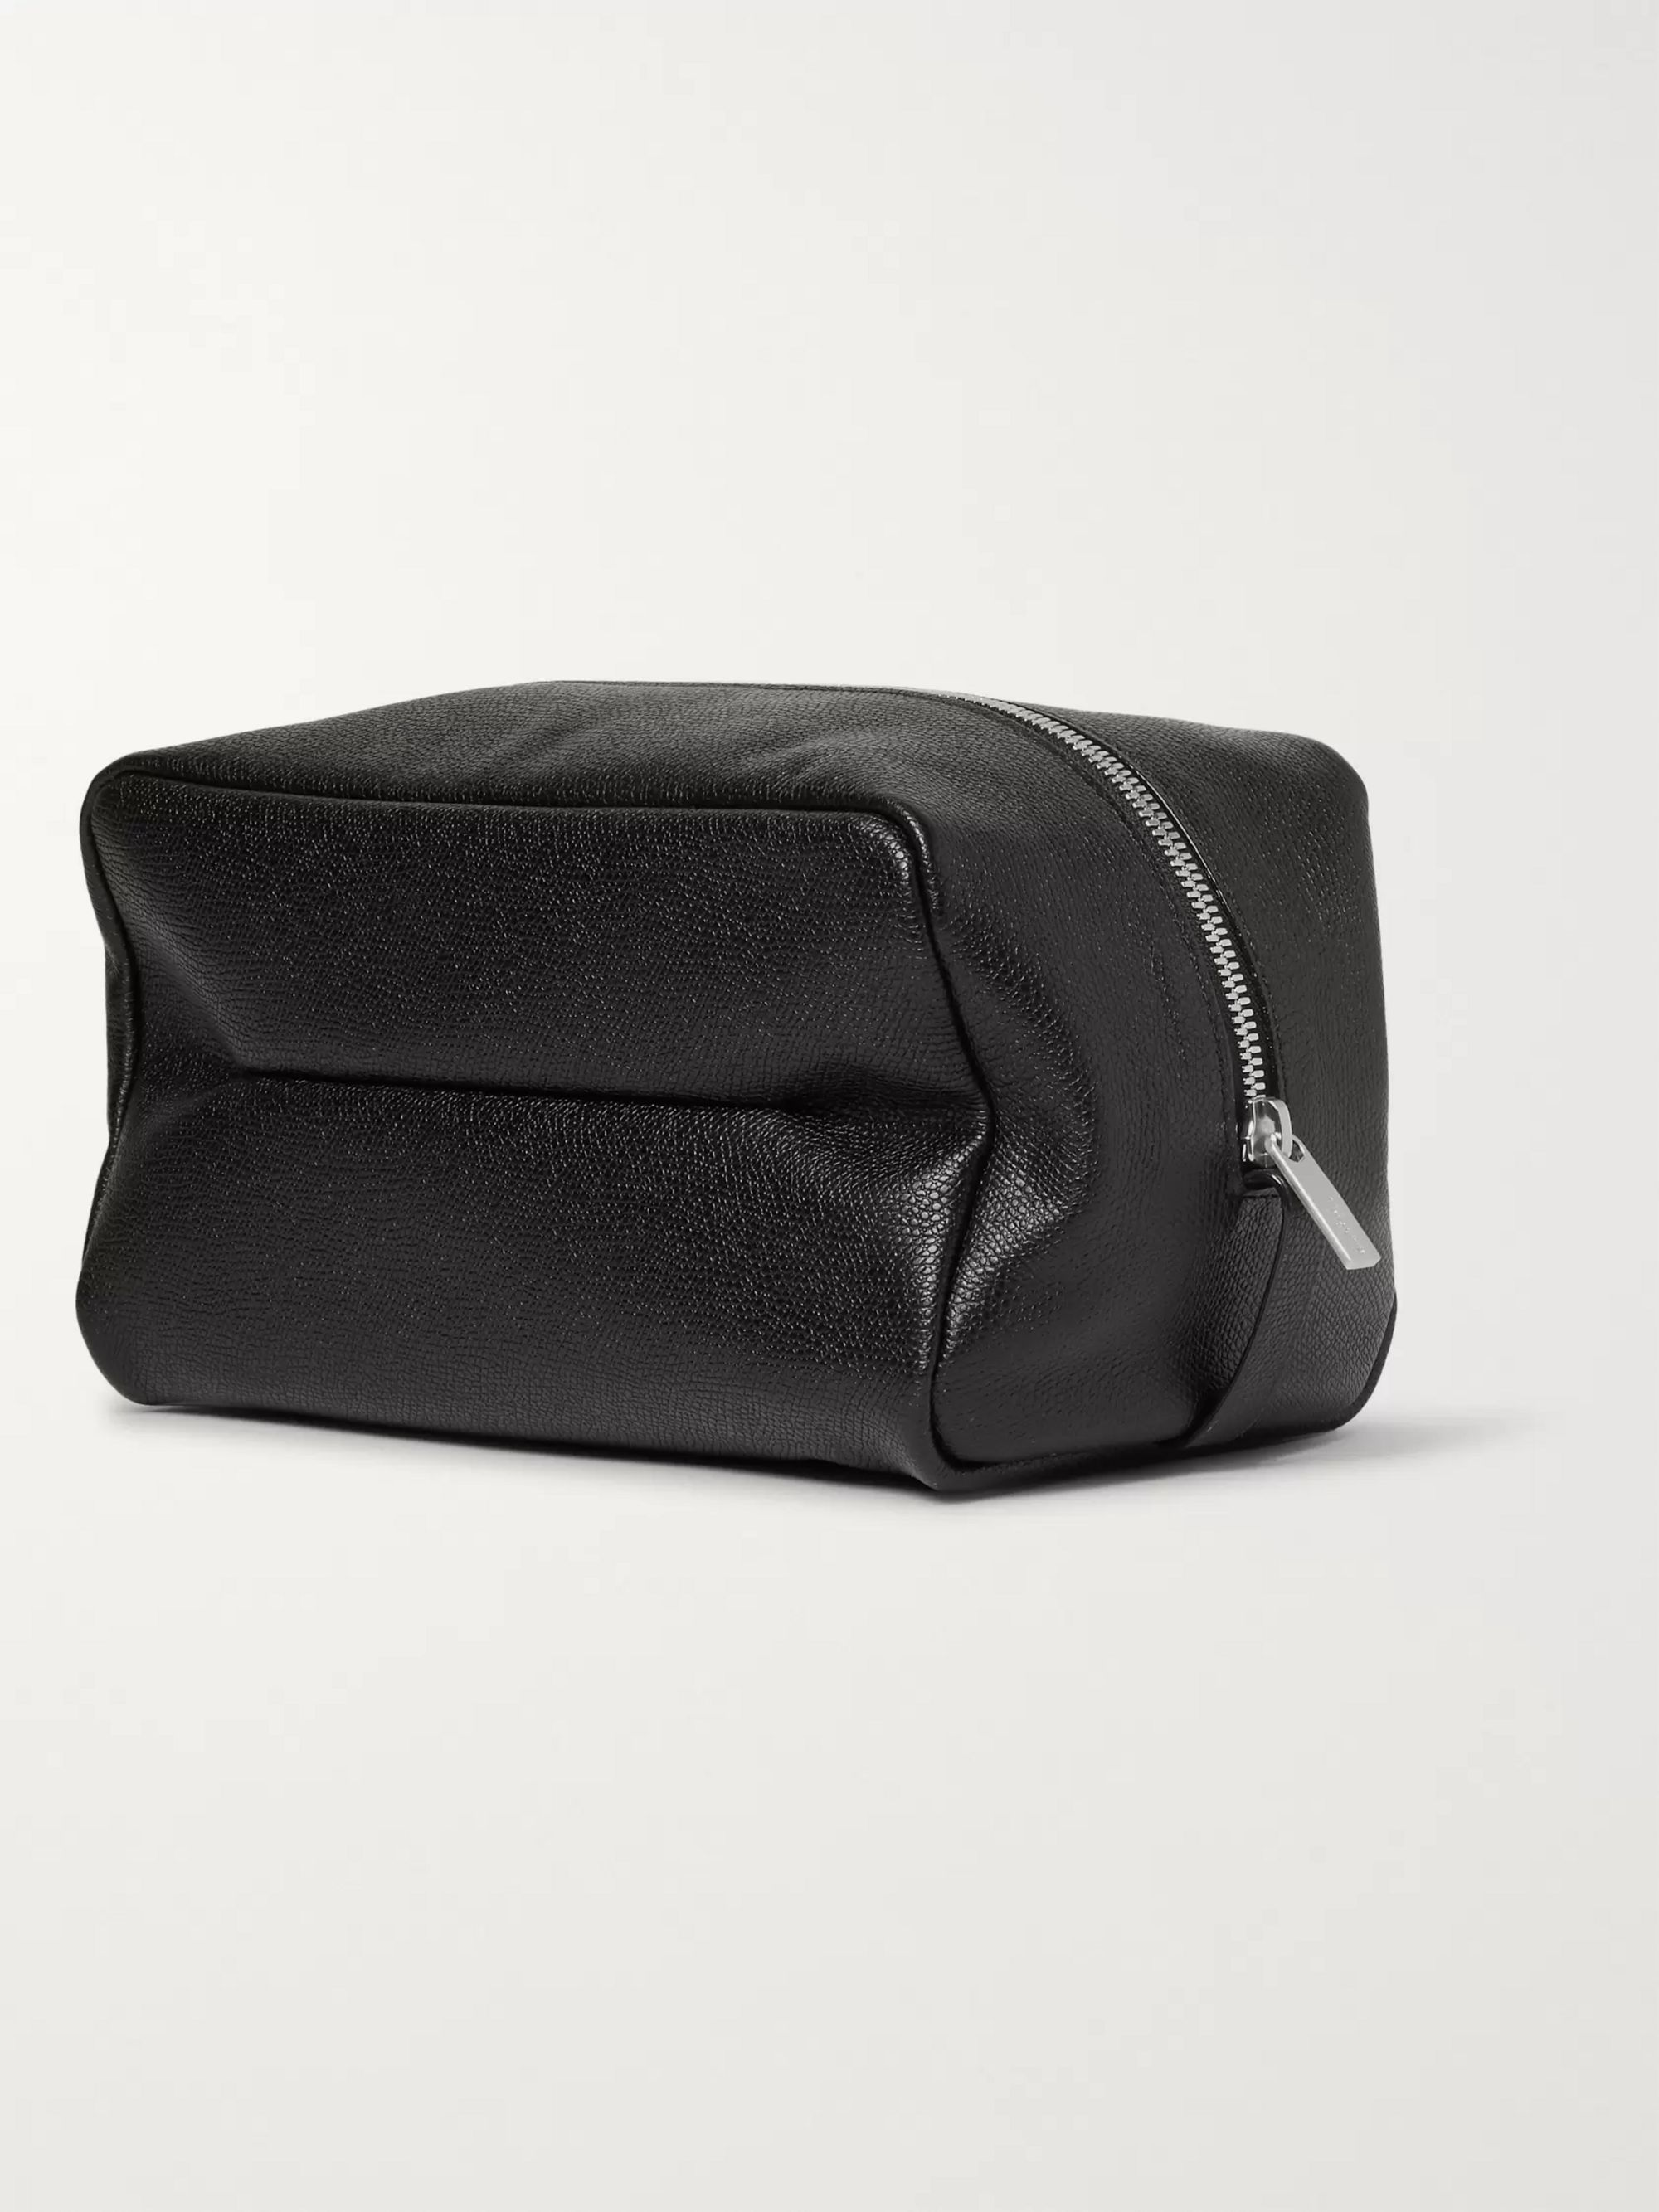 Valextra Large Pebble-Grain Leather Wash Bag